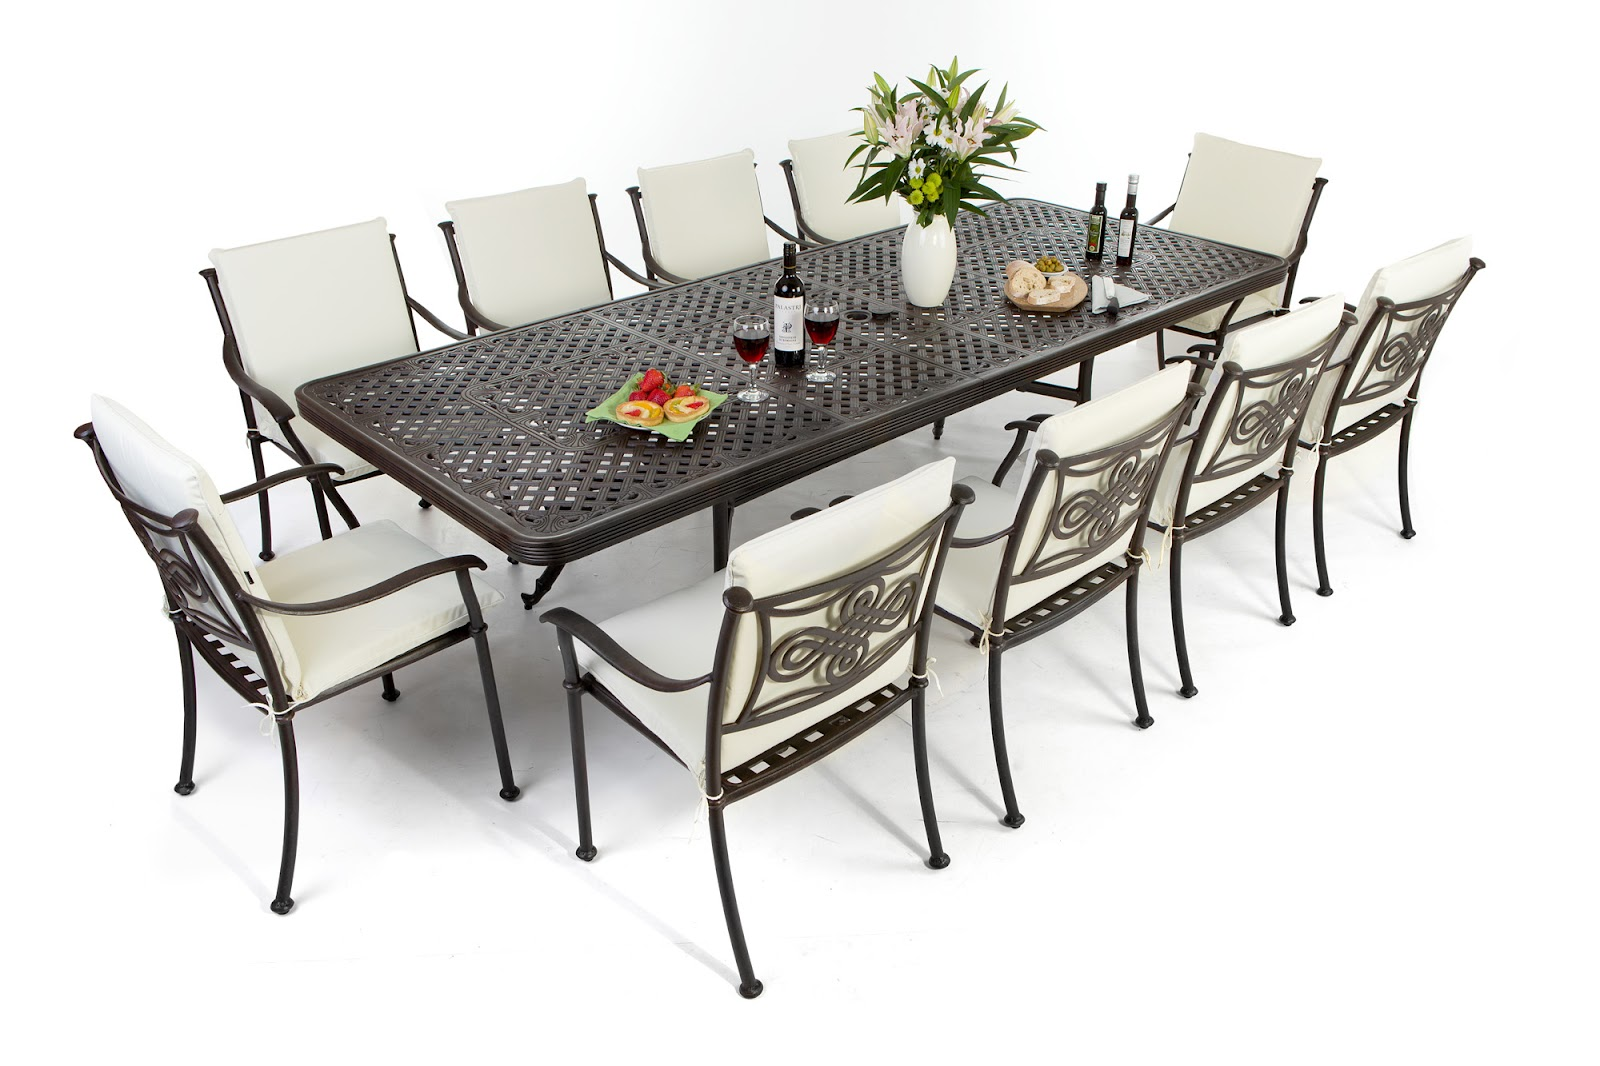 Outside Edge Garden Furniture Blog The Versatile Rhodes